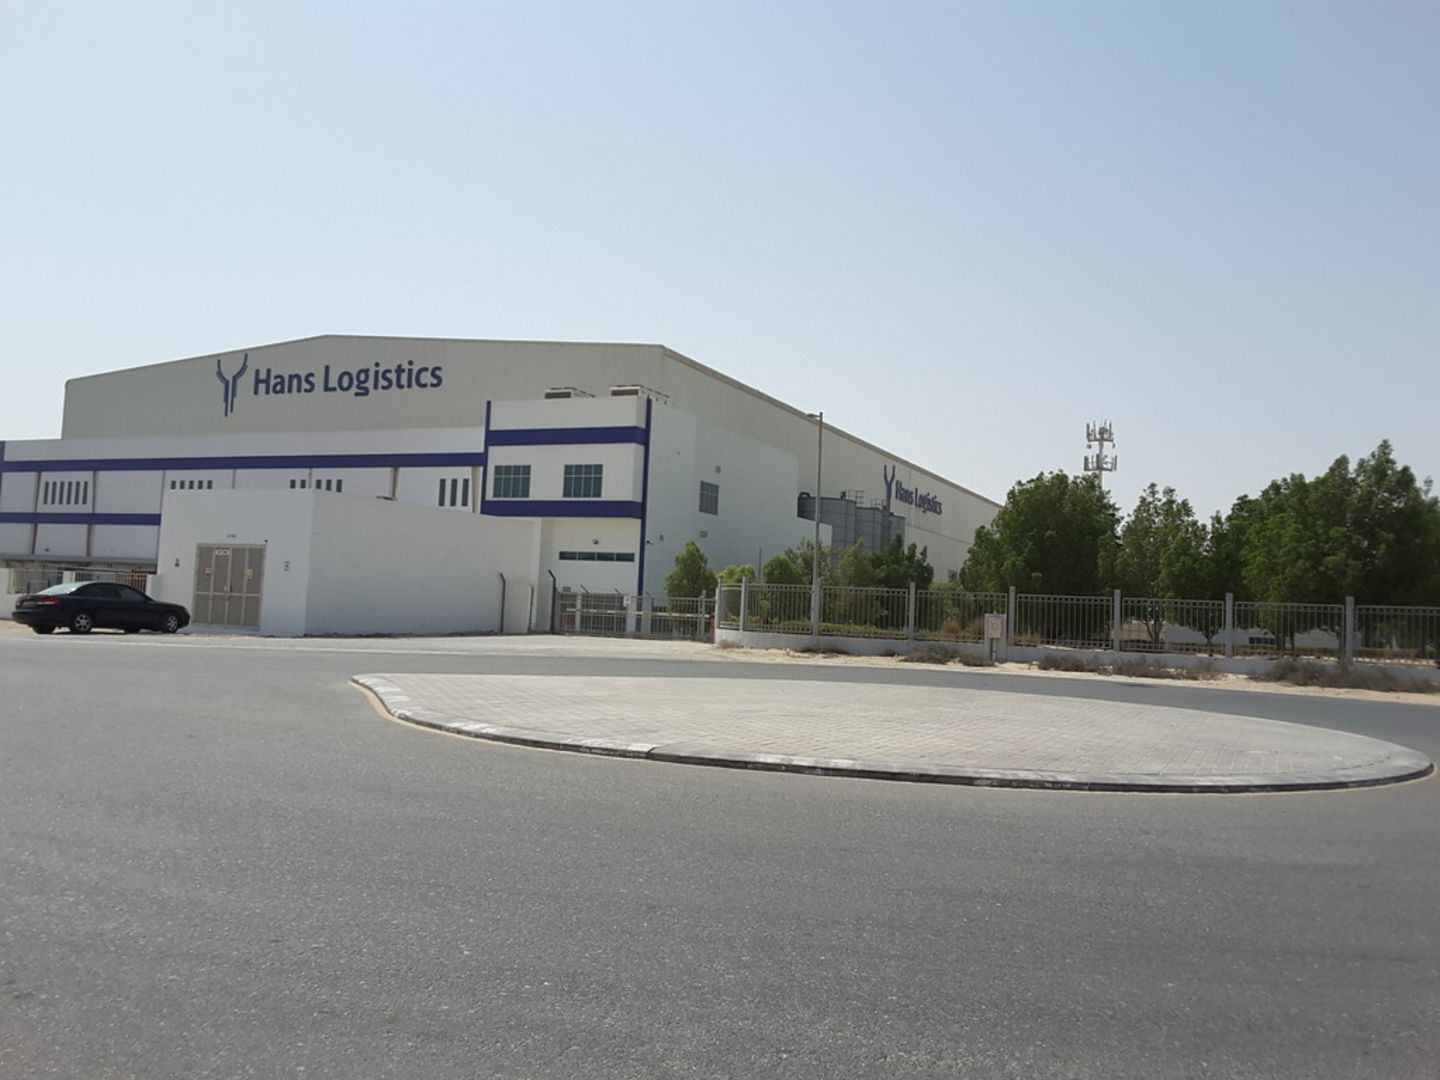 HiDubai-business-hans-logistics-shipping-logistics-air-cargo-services-jebel-ali-industrial-2-dubai-2